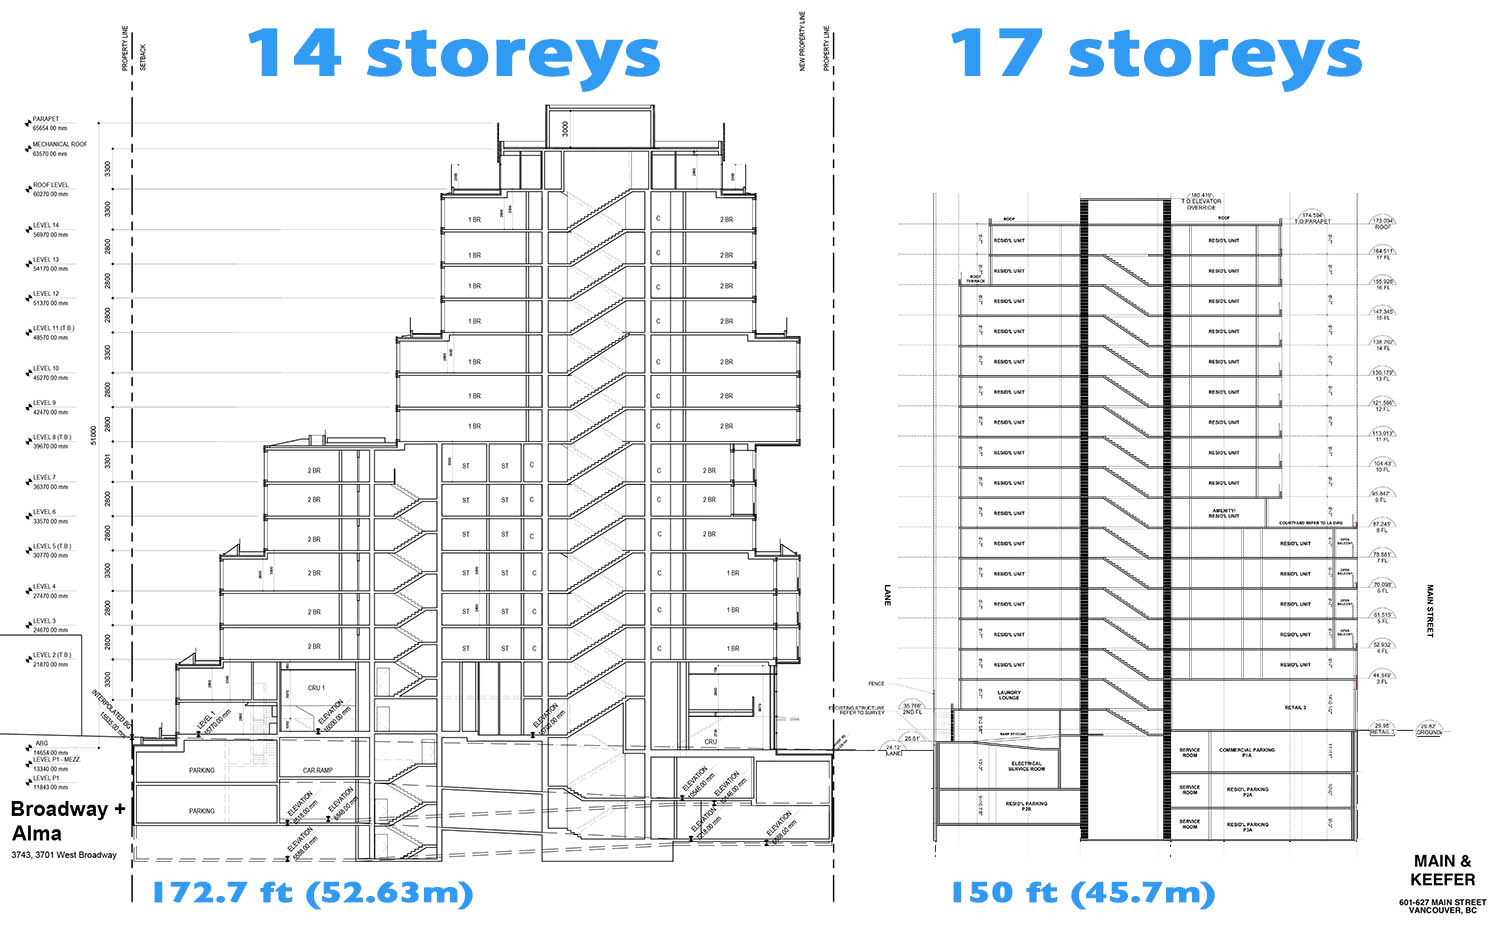 Measuring Towers In Storeys Vs Dimensional Height When